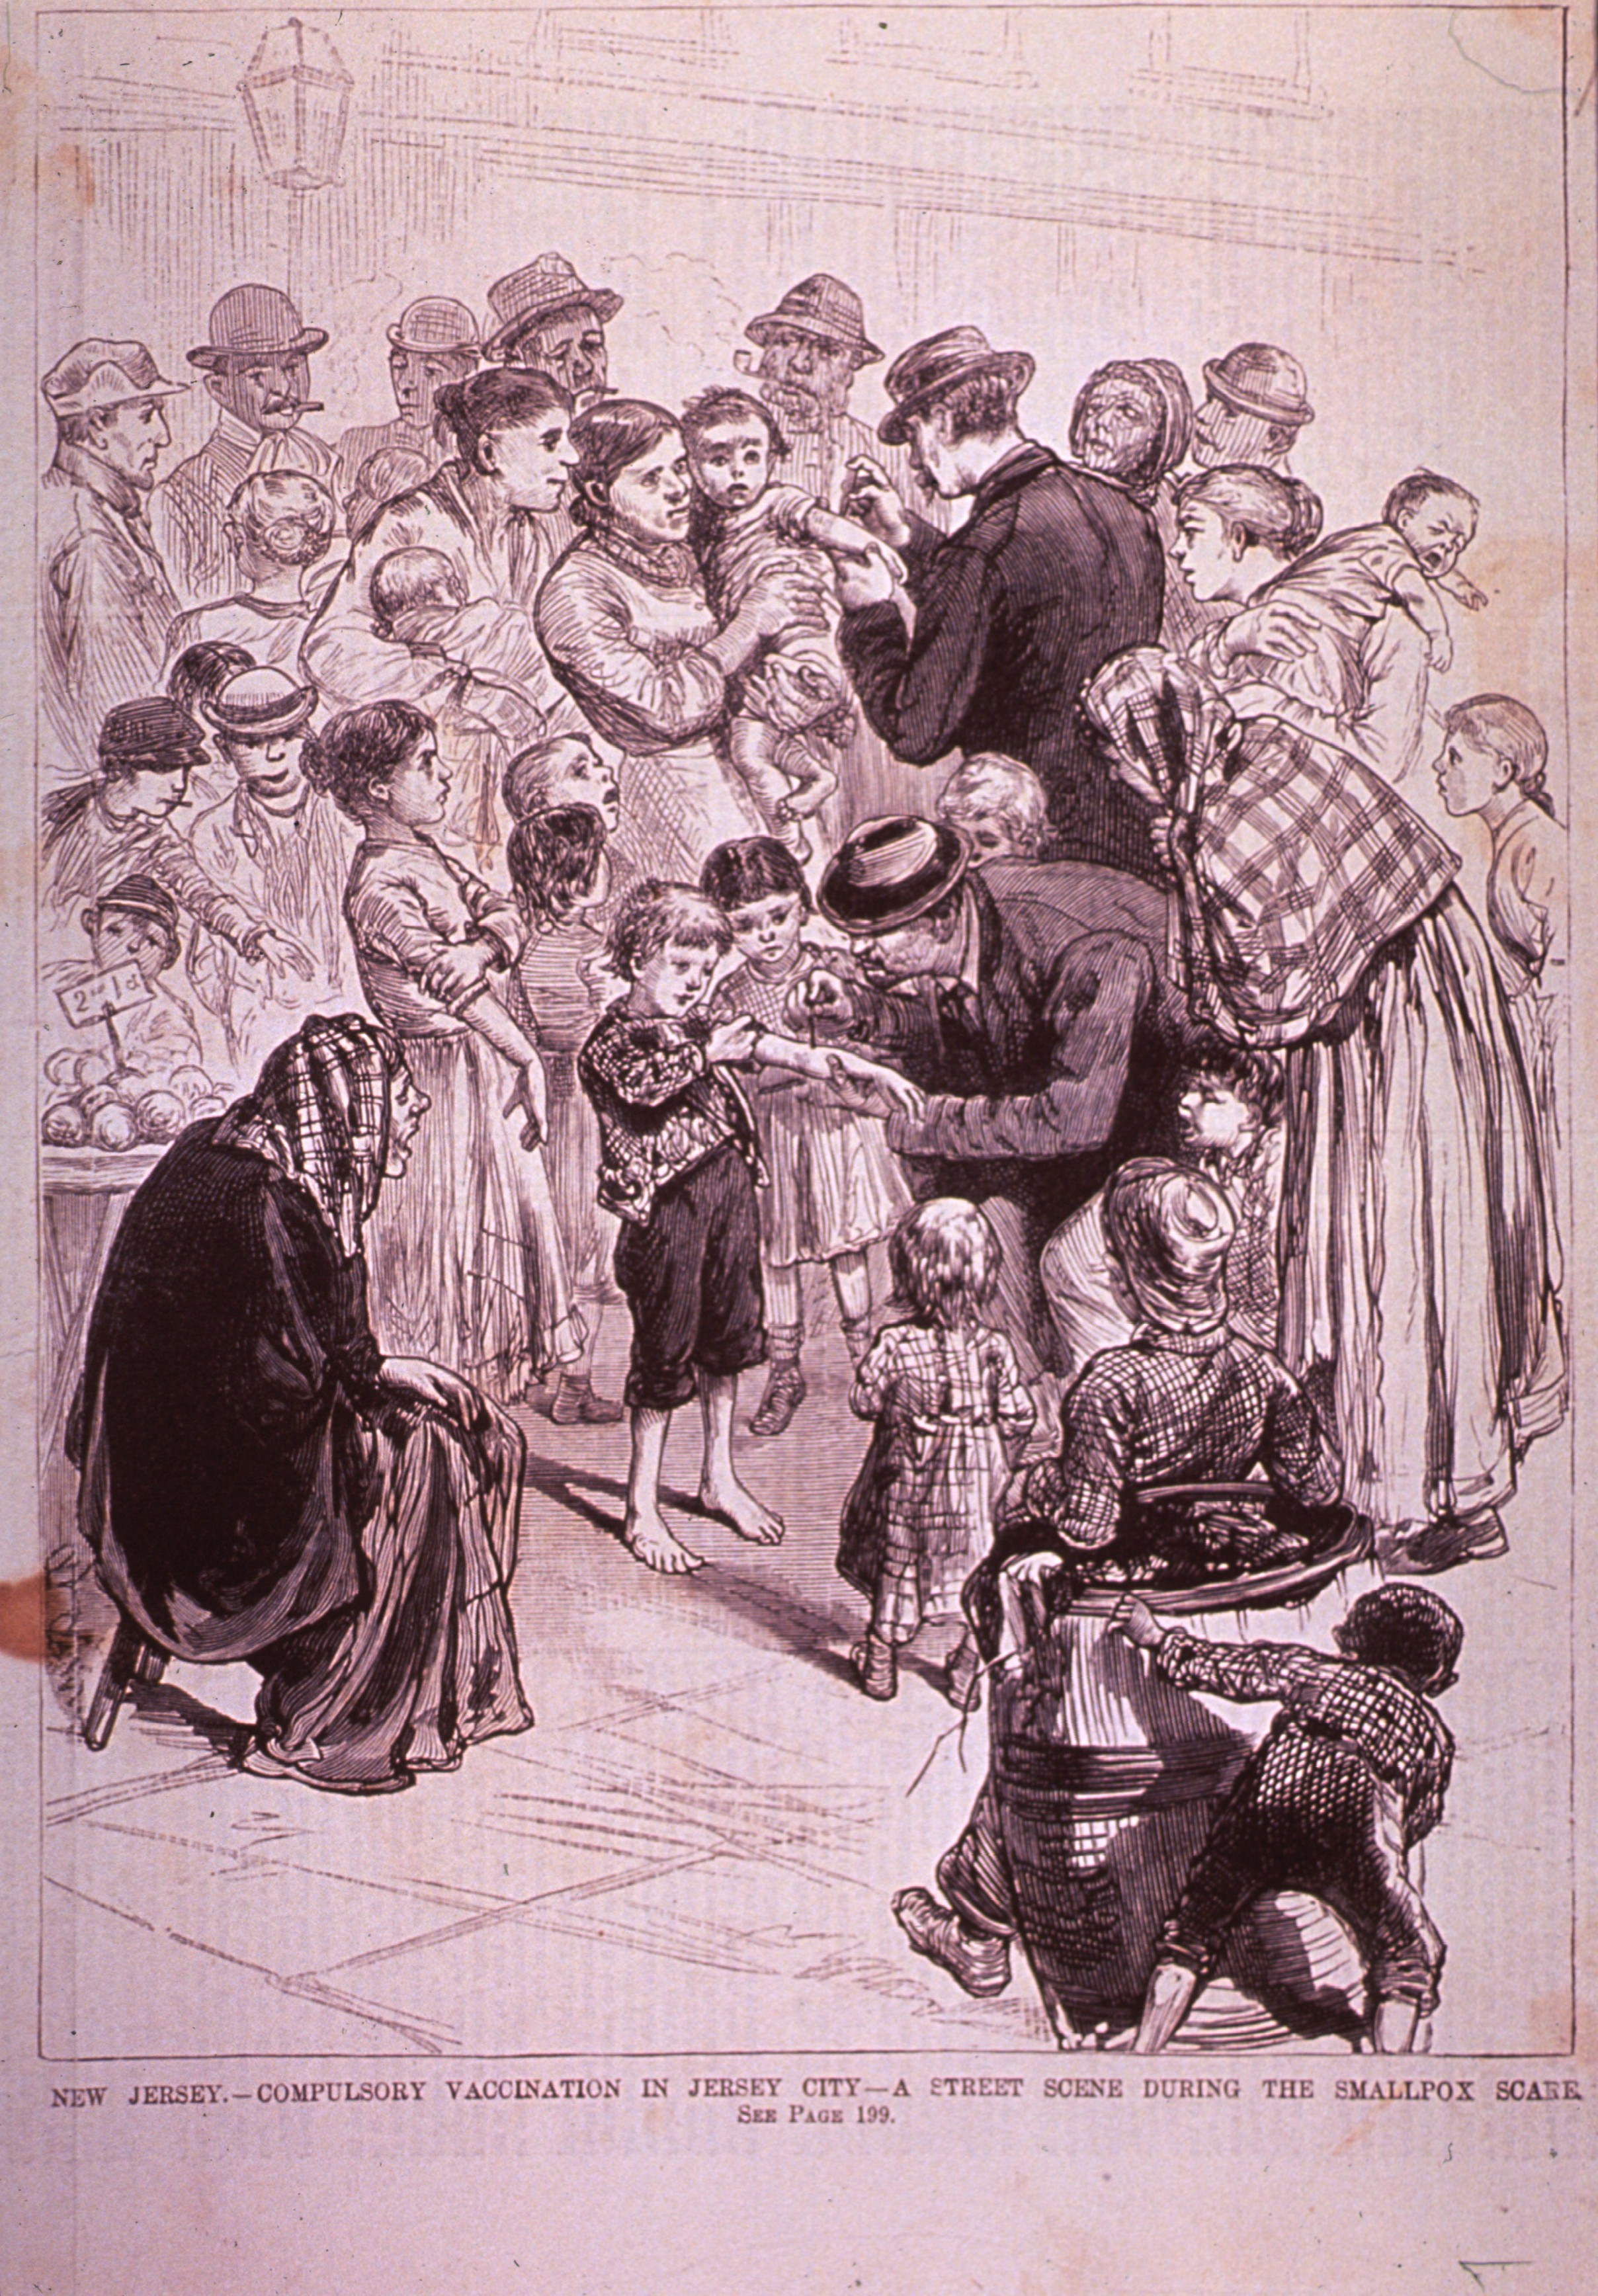 Children receiving vaccinations during a Smallpox scare in Jersey City, New Jersey.